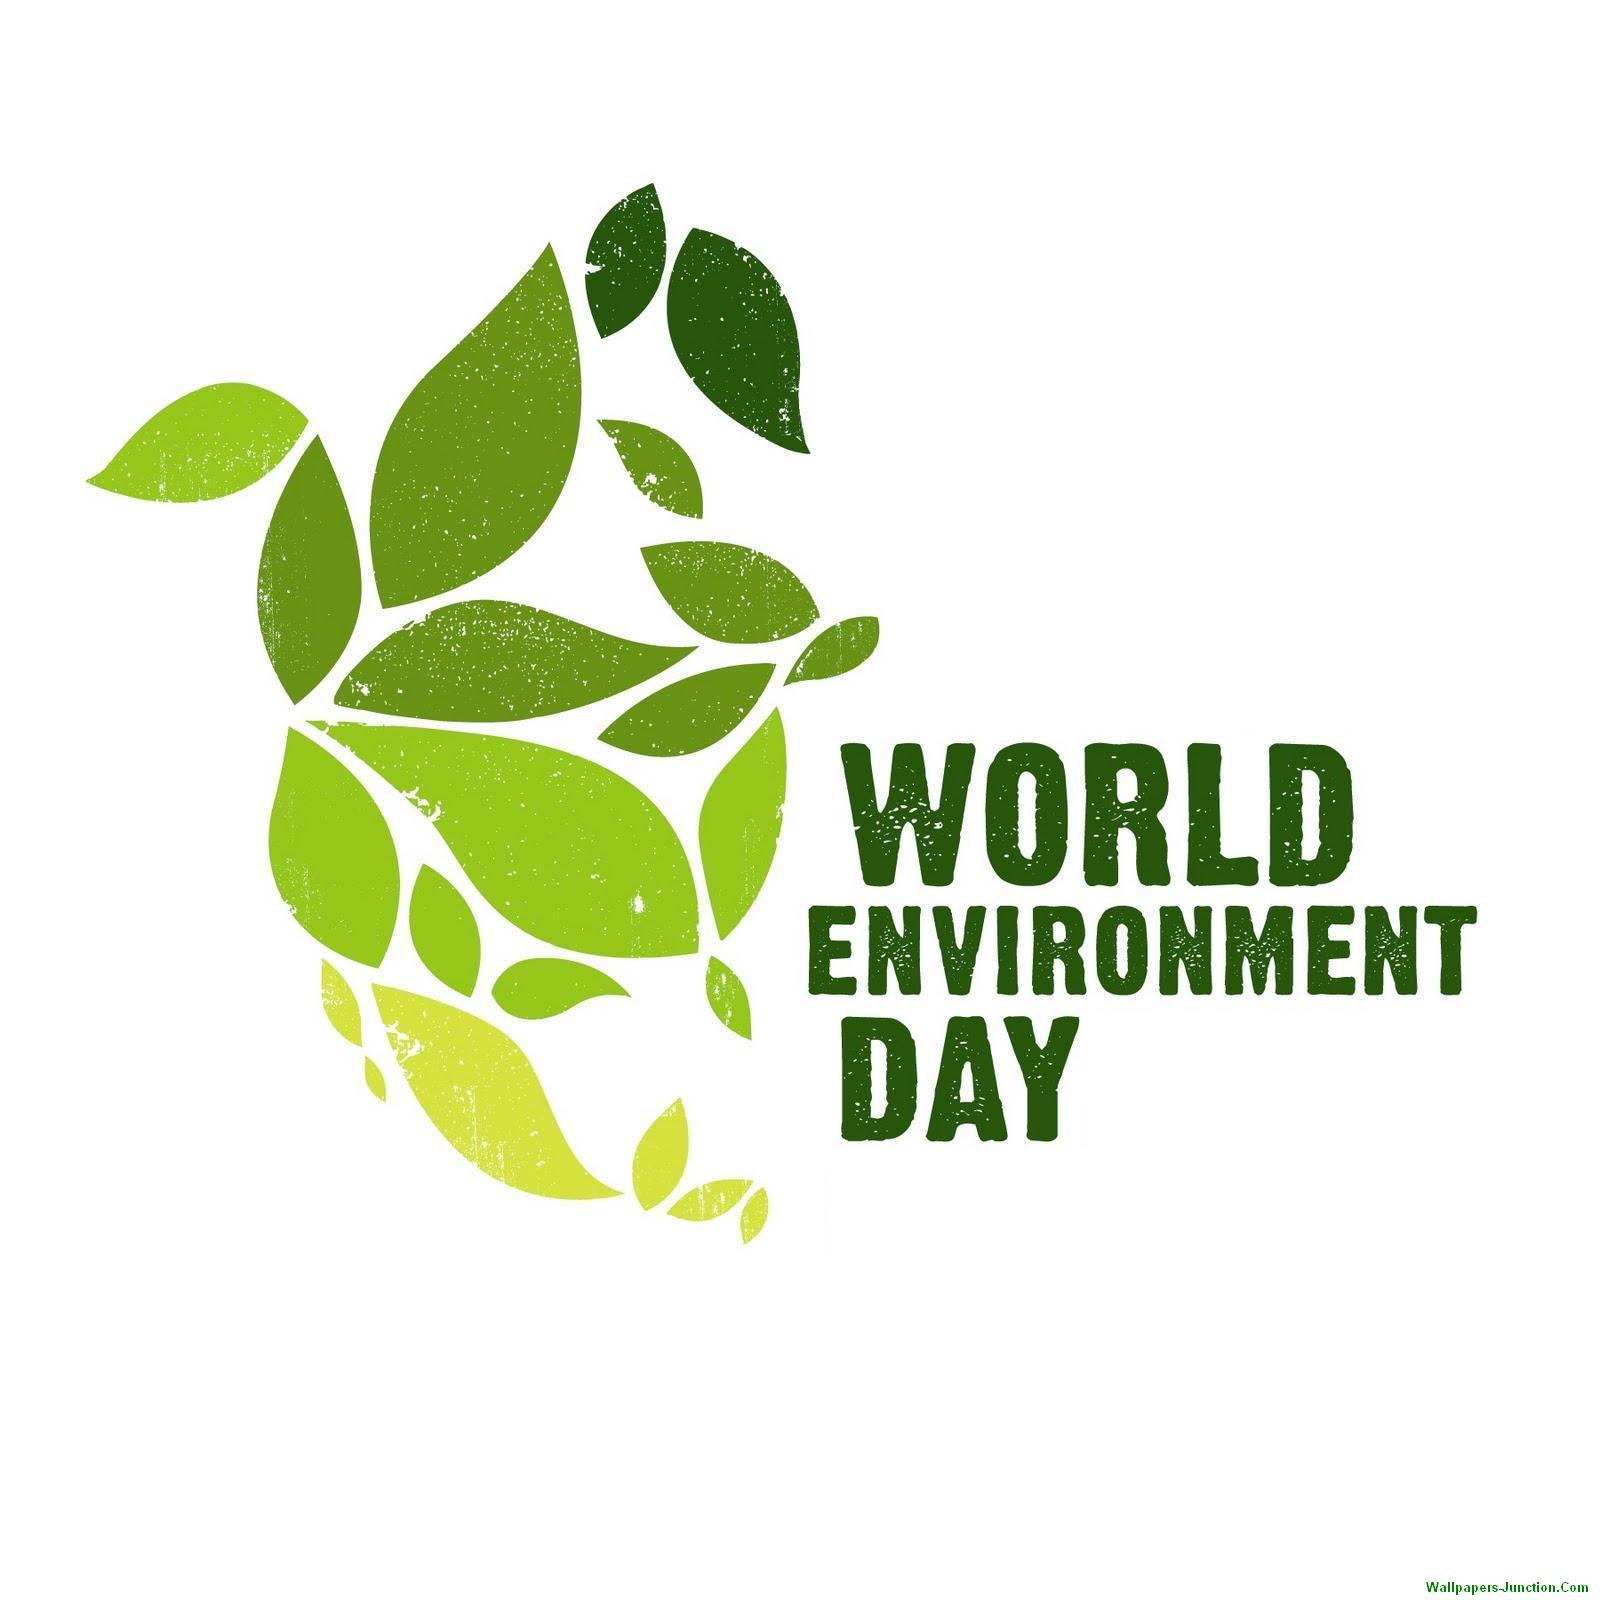 World Environment Day 2017 Images free download